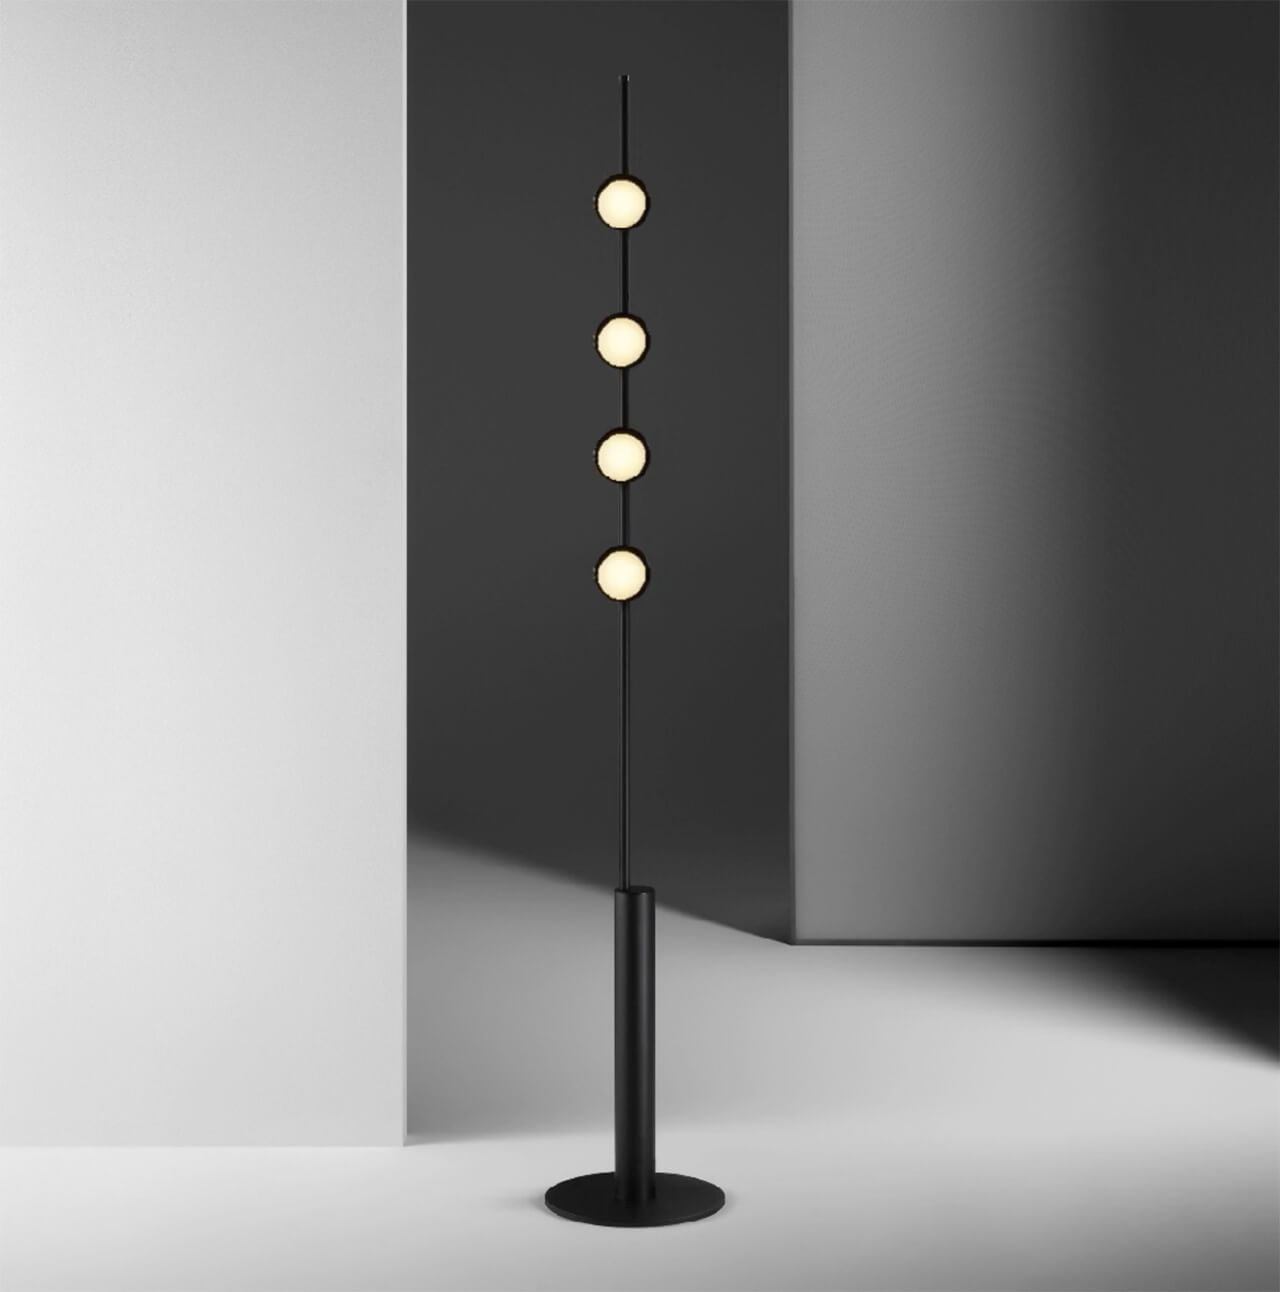 Typography Floor Lamp | Made in the Netherlands: Curated by Wendy Plomp | STIRworld